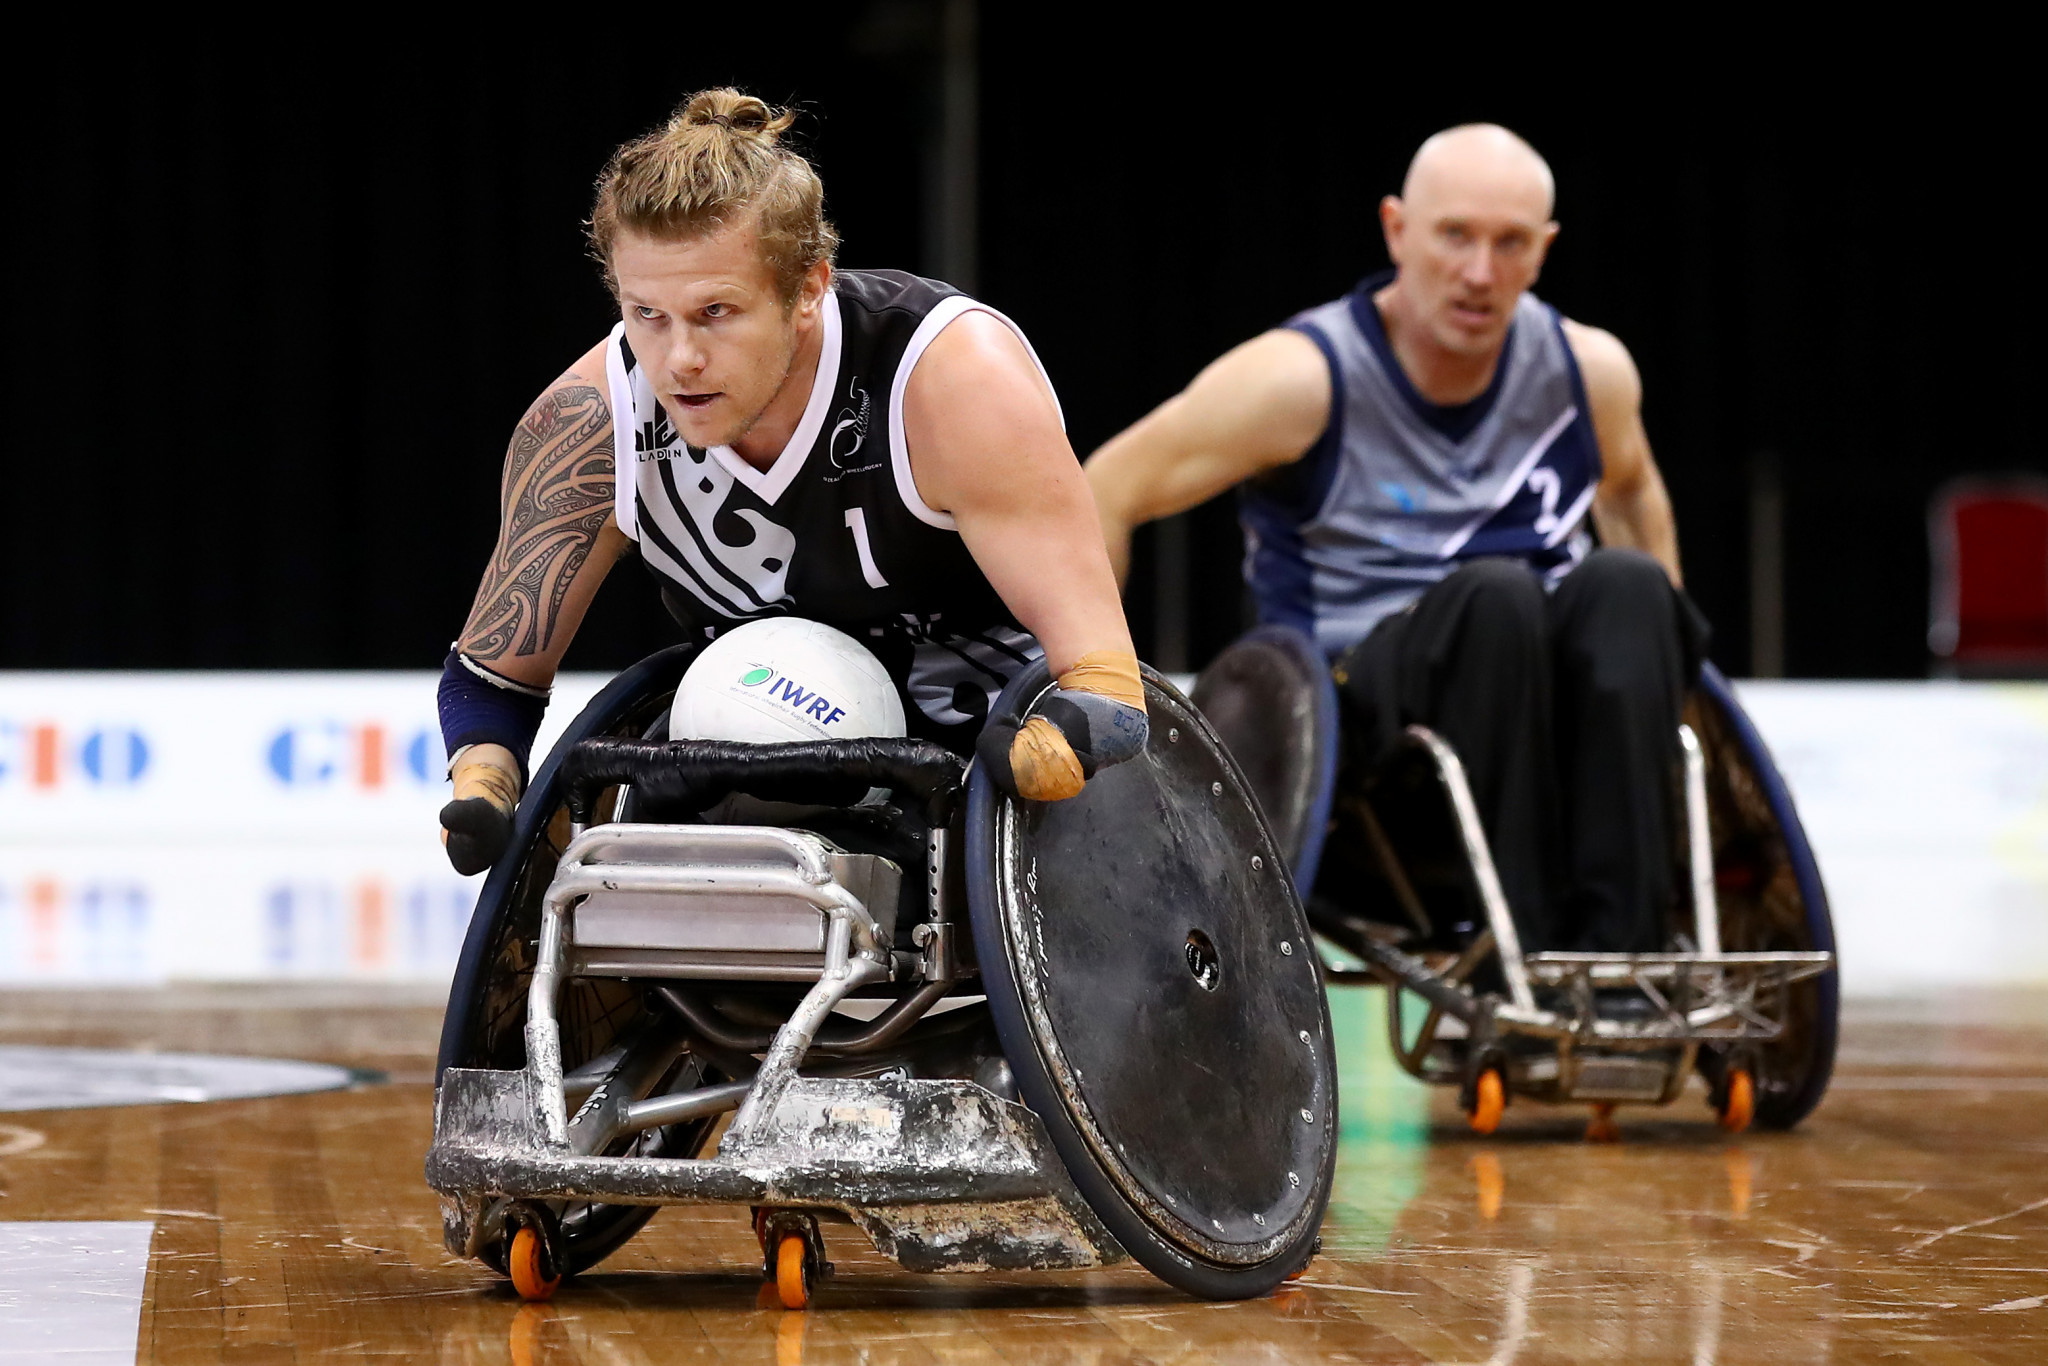 Cameron Leslie has been named in New Zealand's eight-man wheelchair rugby squad for Tokyo 2020 ©Getty Images